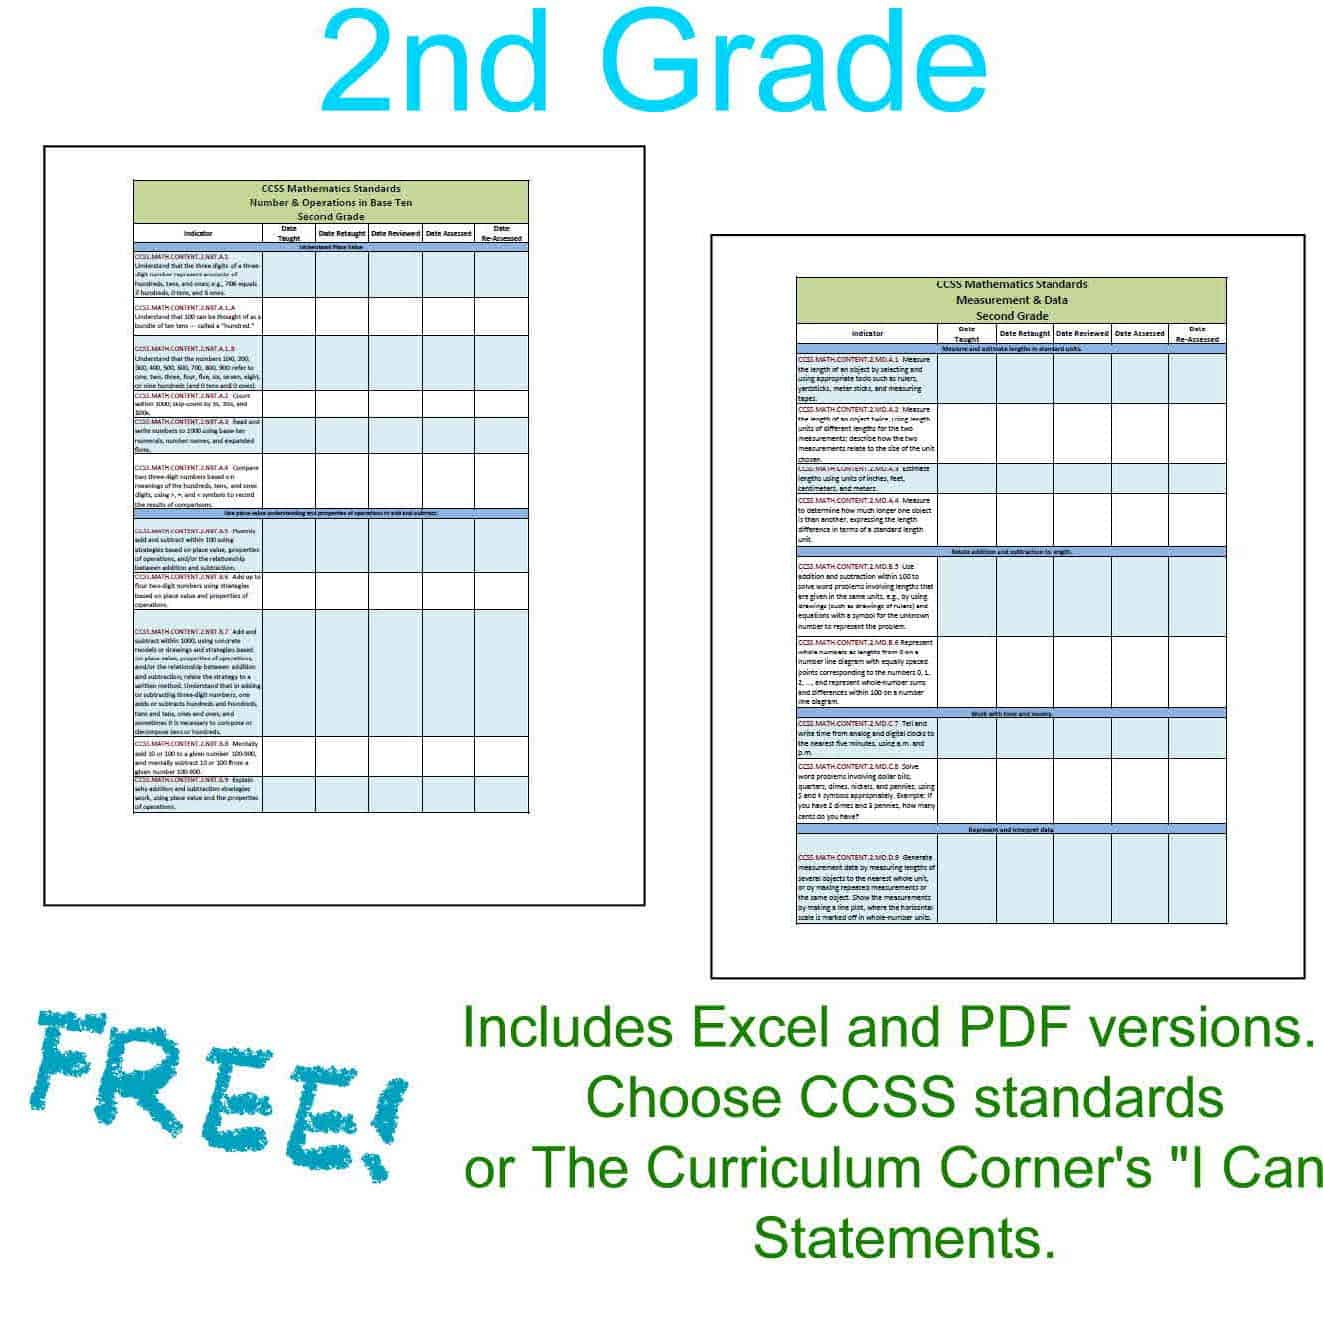 9th Grade Language Arts Worksheets Excel Updated Nd Grade Ccss I Can Checklists  The Curriculum Corner  Bill Nye Erosion Worksheet Excel with 4th Grade Point Of View Worksheets Pdf  Bike Safety Worksheet